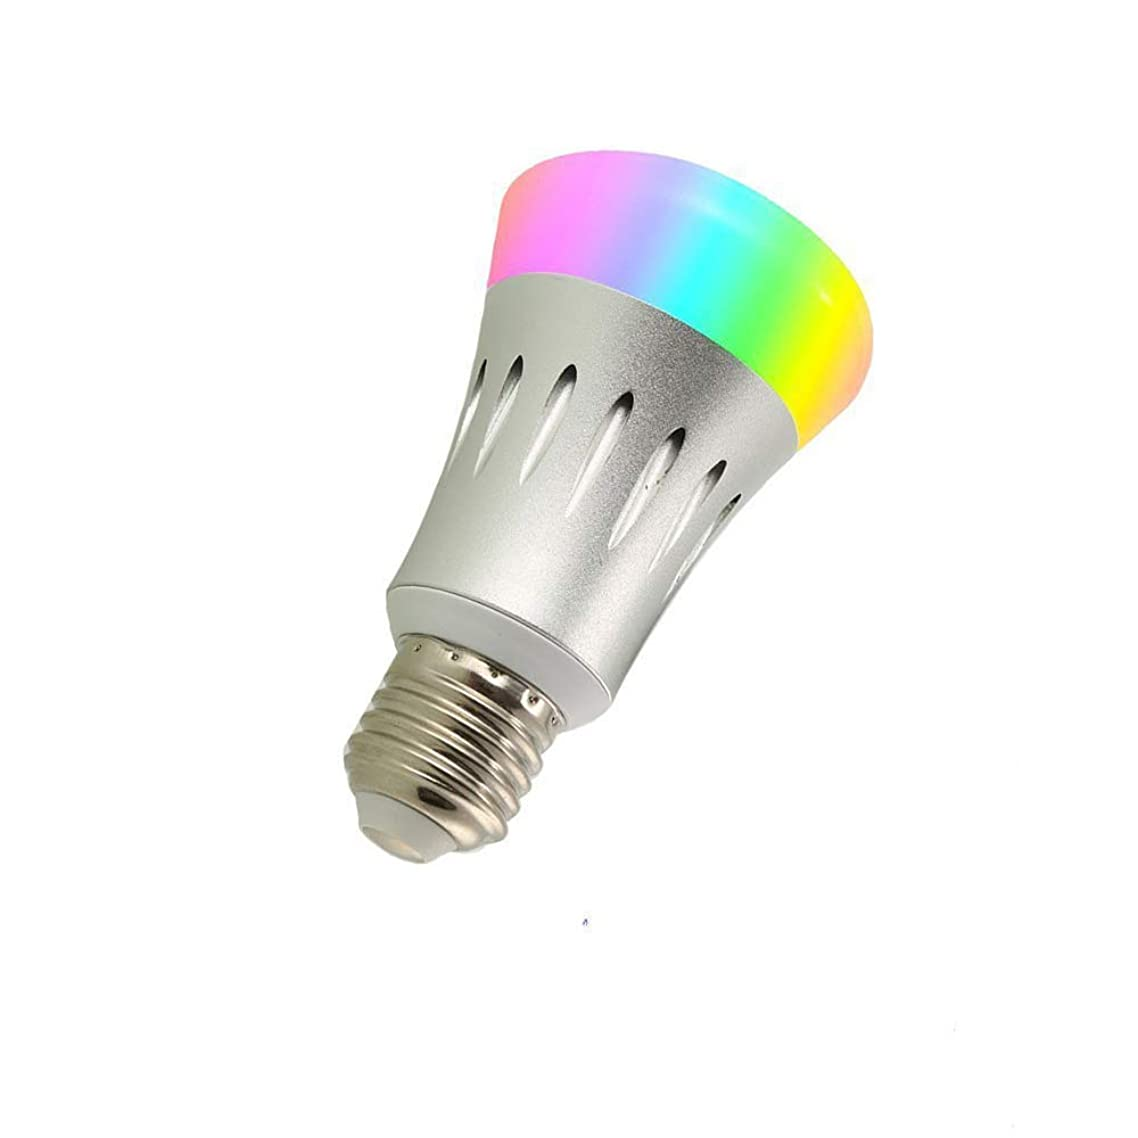 Smart WiFi LED Light Bulb - 60W Equivalent Multi-Color LED Lightbulb, Change Color, Dime The Light, Set Timer and Schedule, Turn On/Off Remotely All, Voice Control Using Amazon Alexa or Google Home